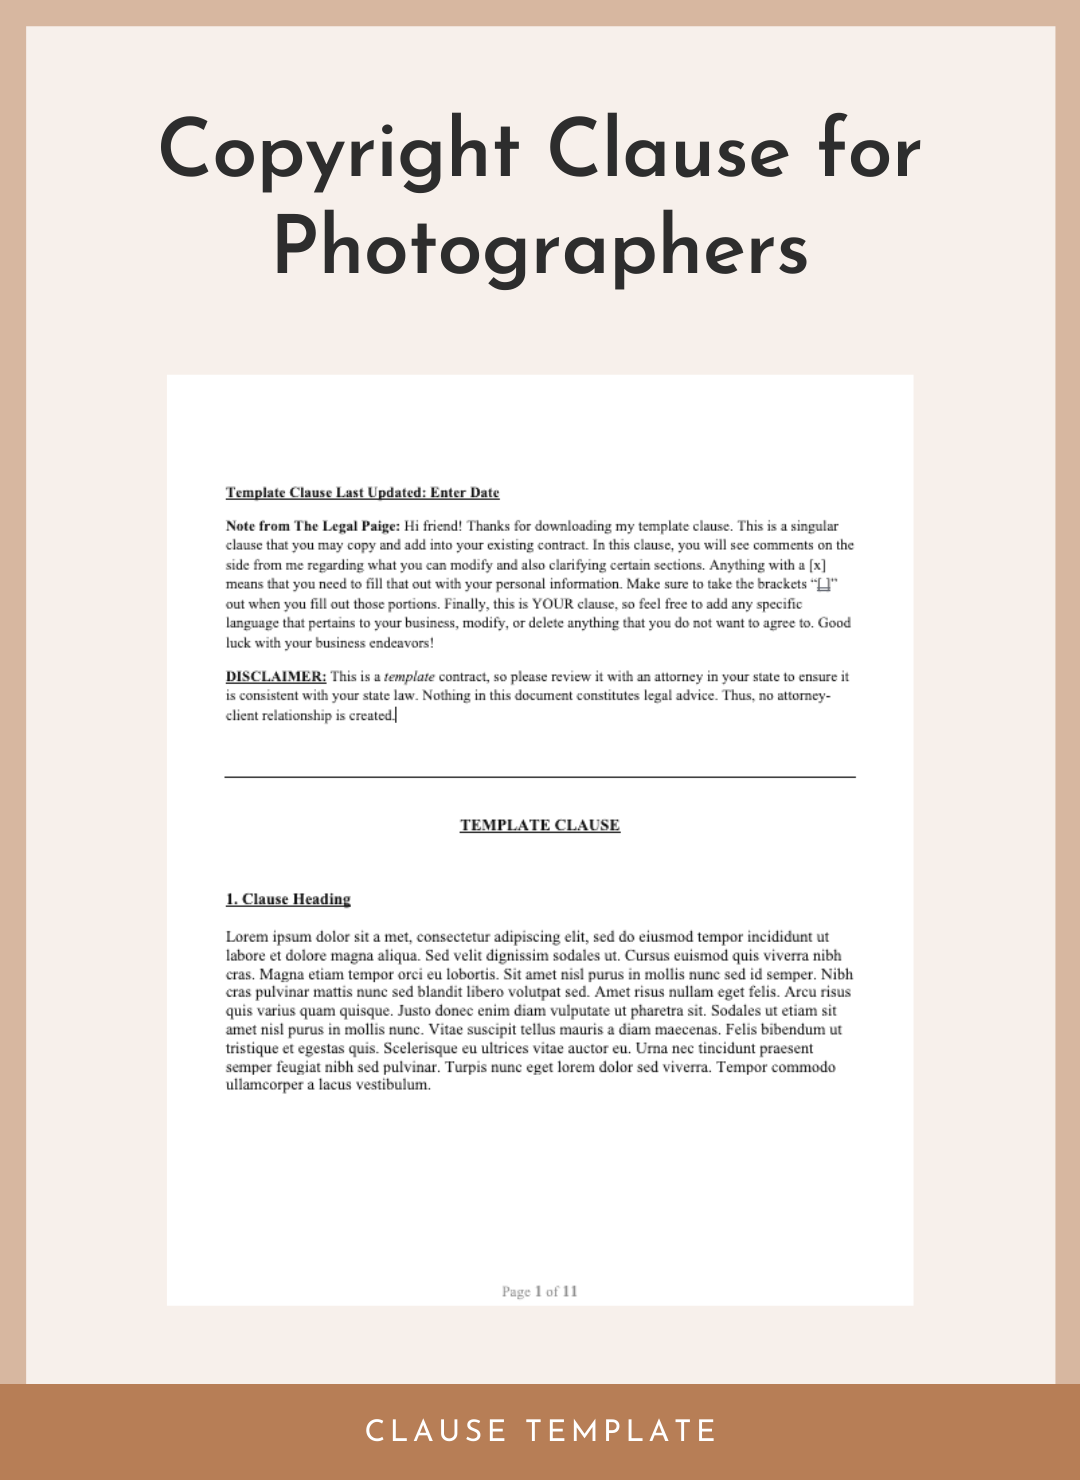 Copyright Clause For Photographers